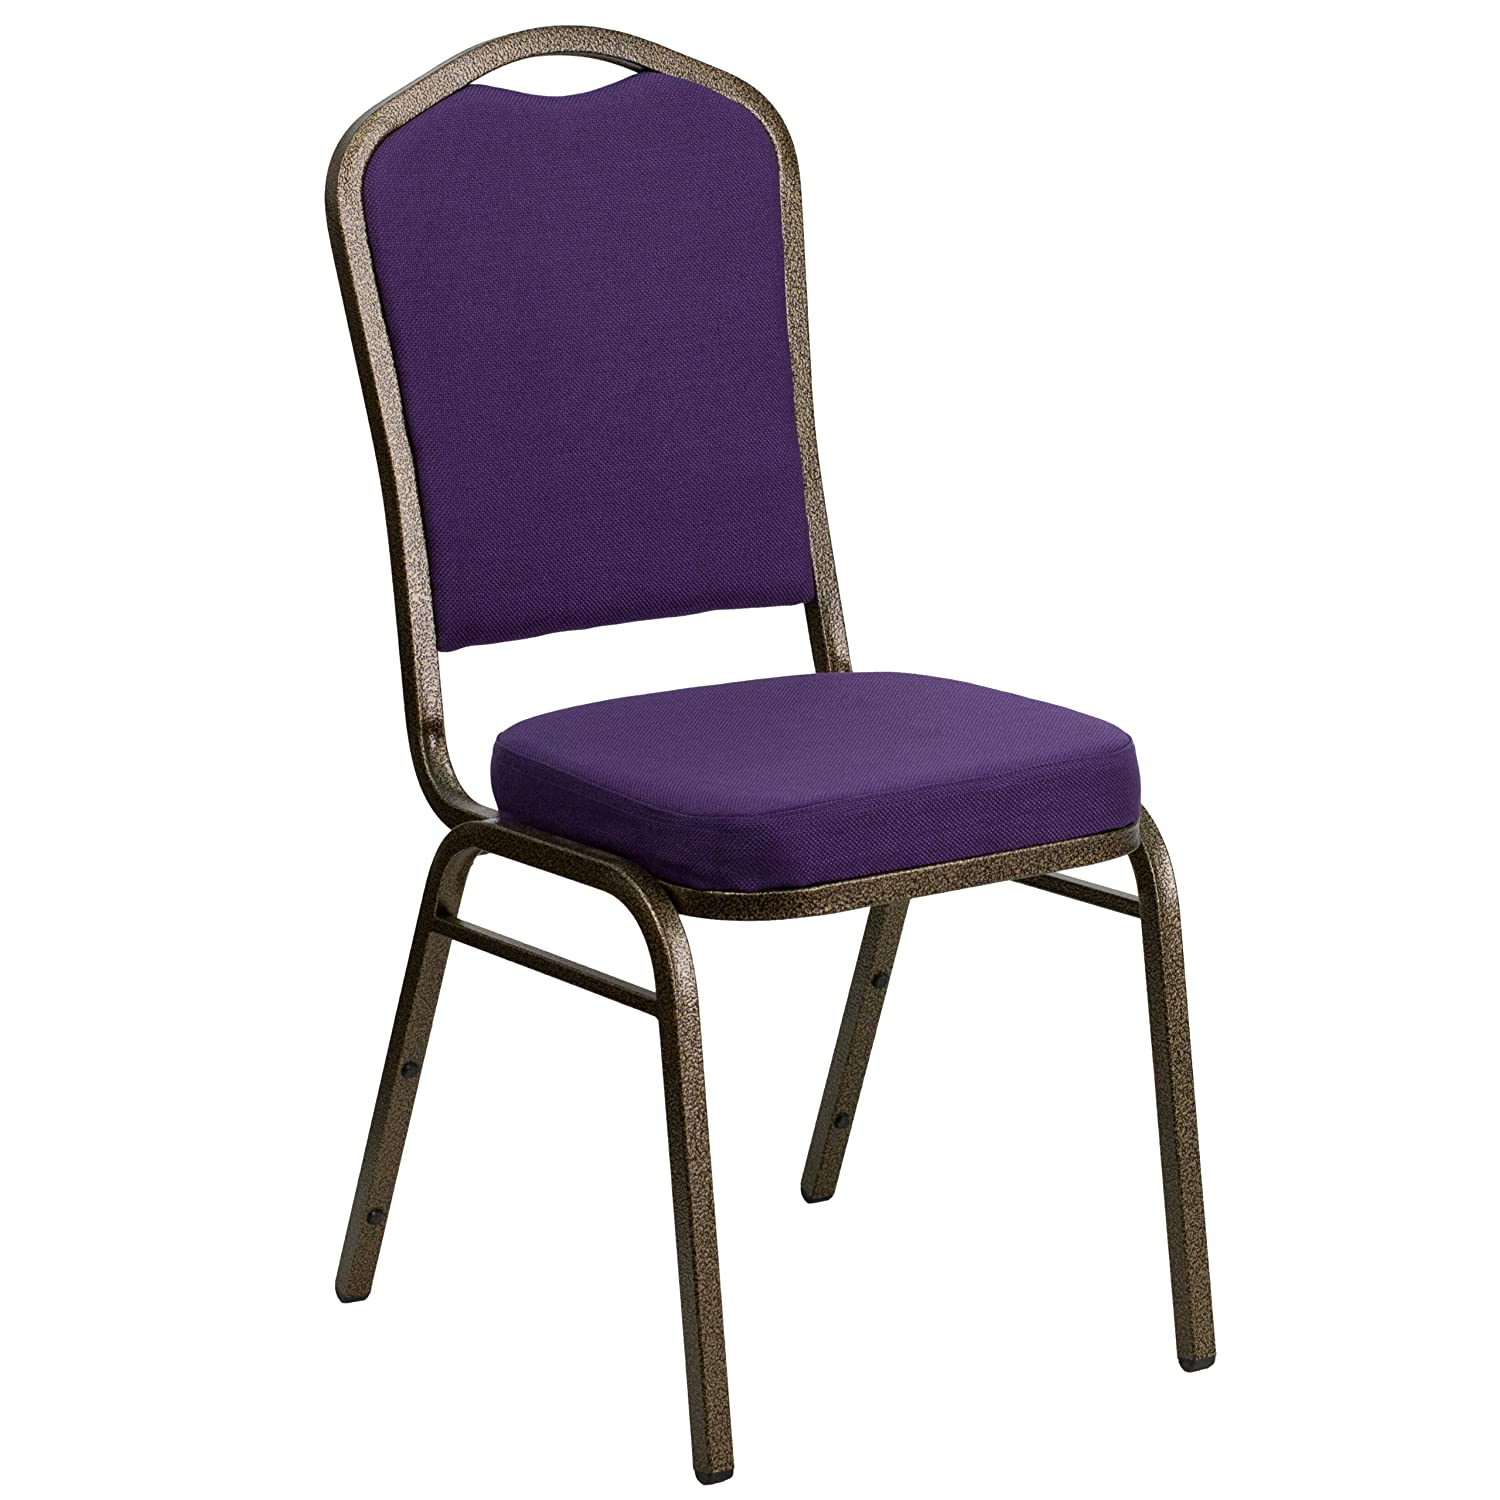 Amazon.com   Flash Furniture HERCULES Series Crown Back Stacking Banquet  Chair In Purple Fabric   Gold Vein Frame   Chairs